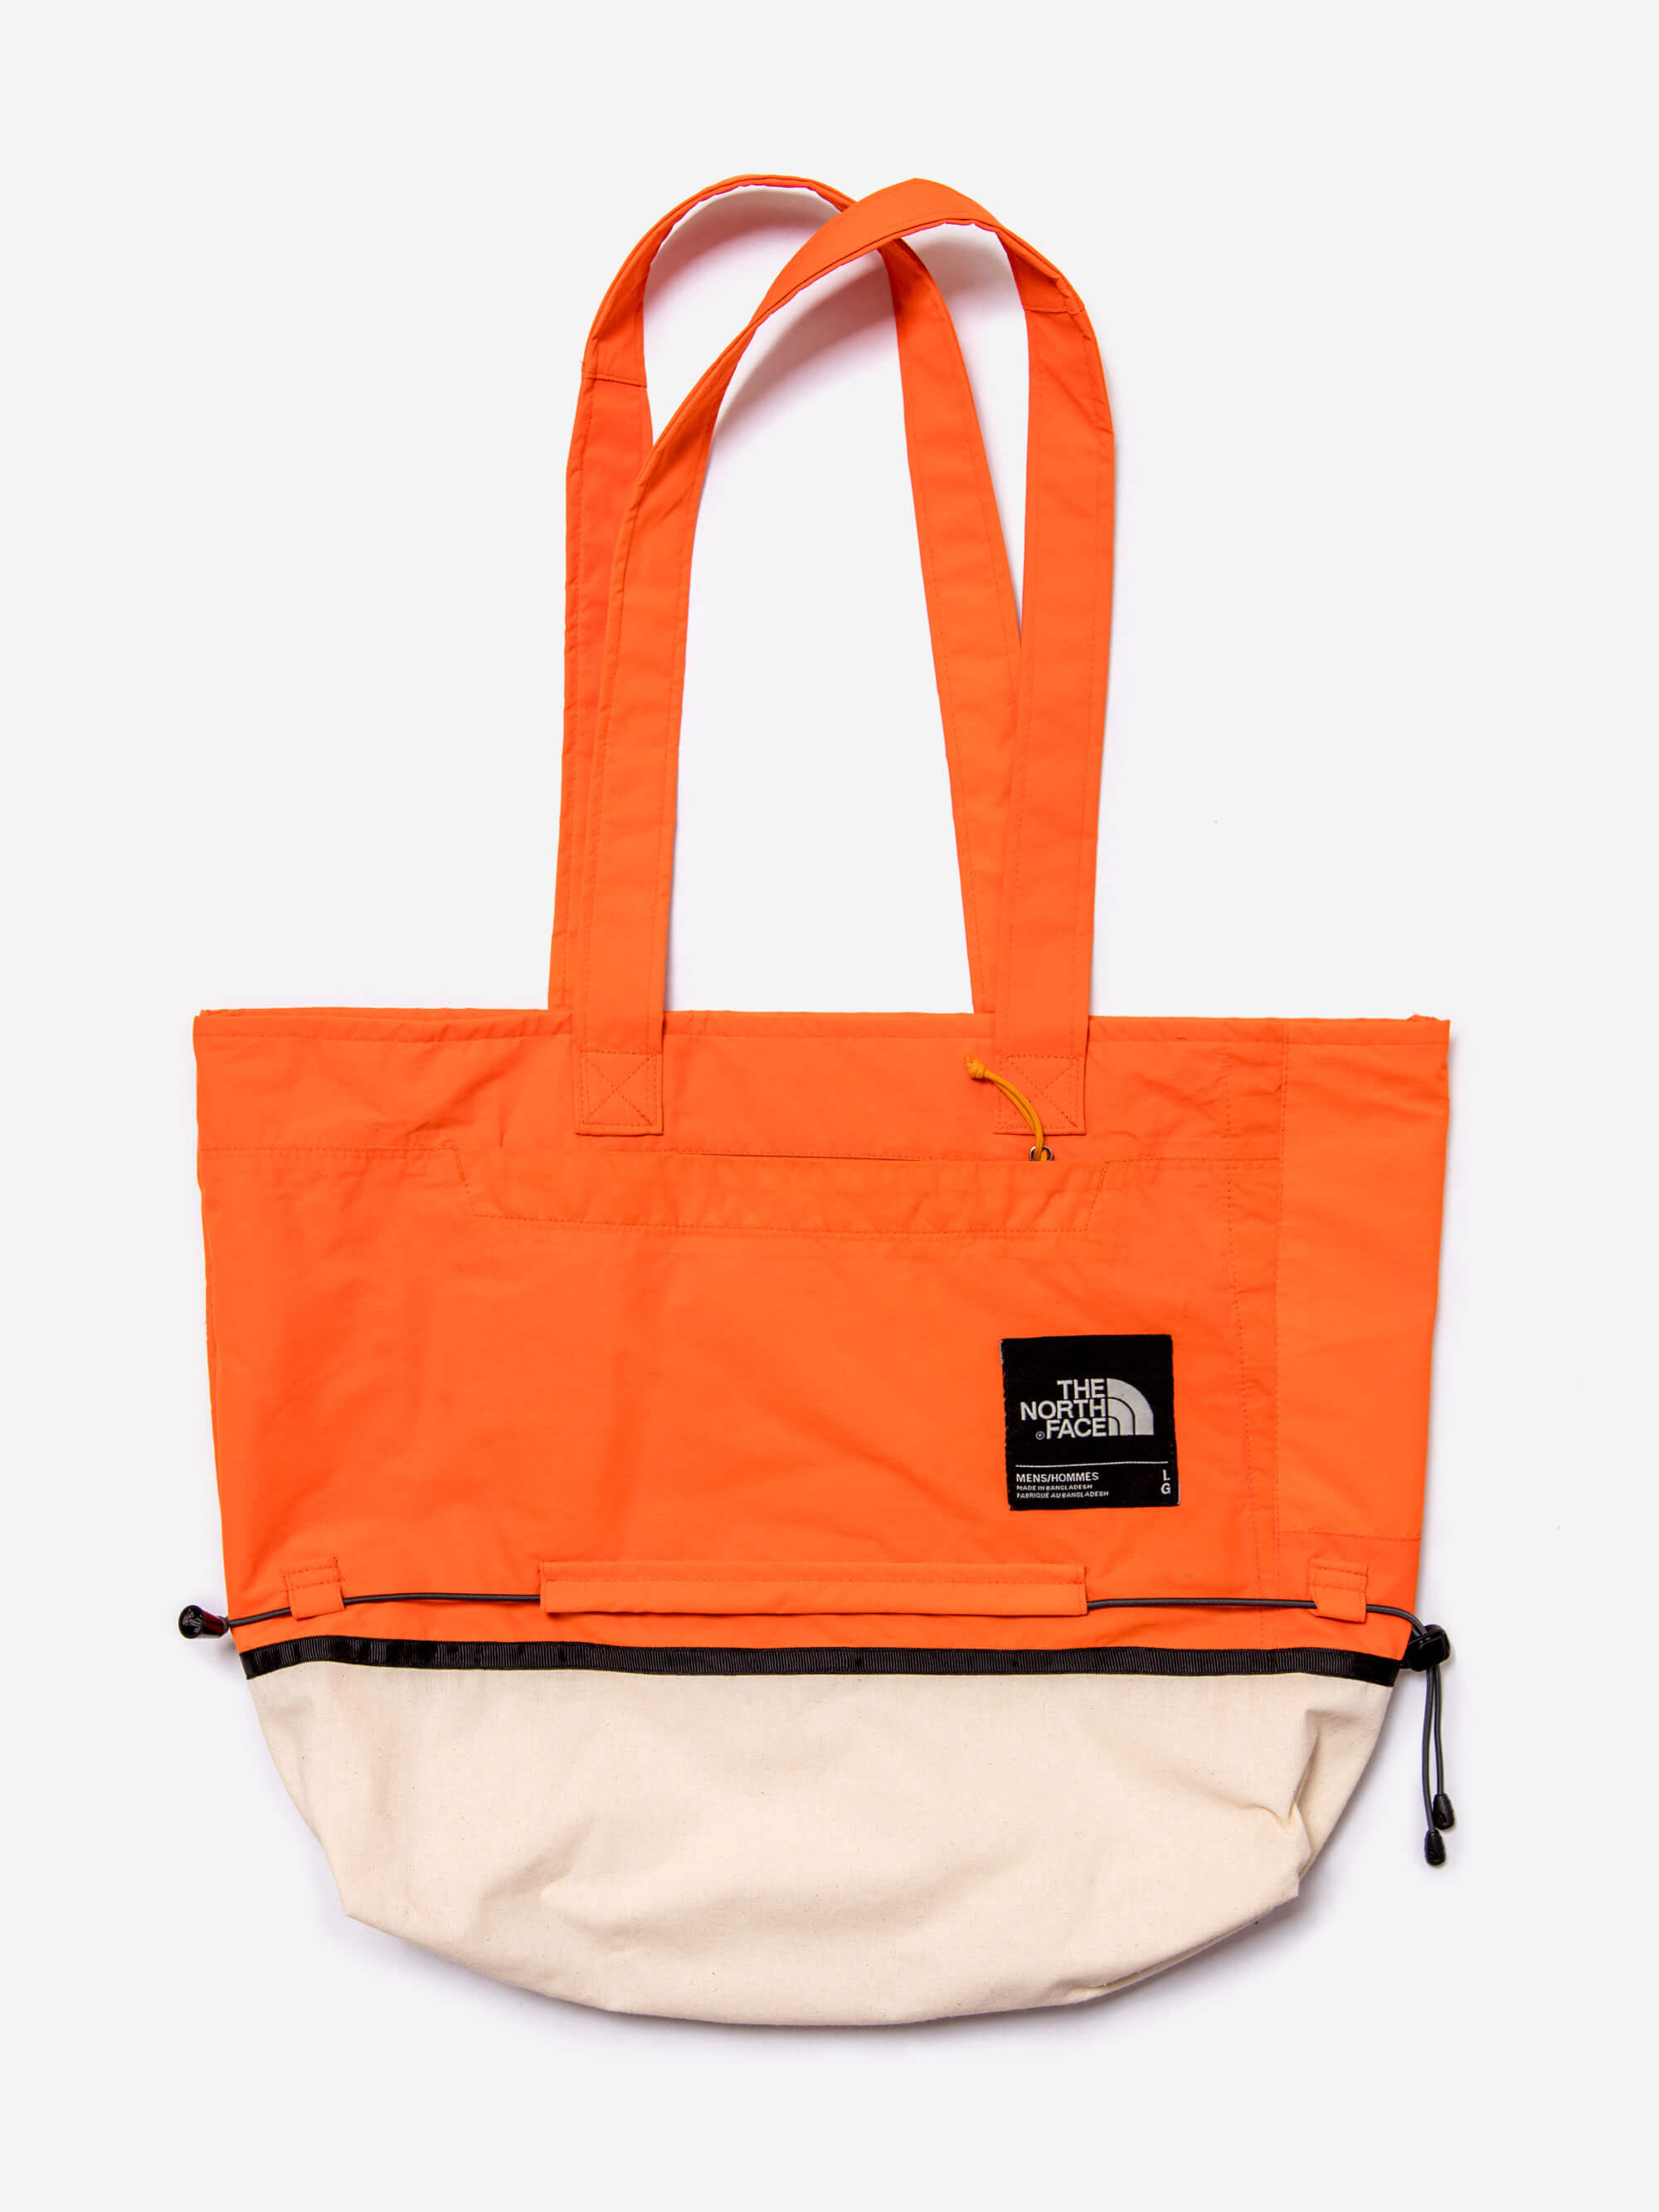 North Face Repurposed Greater_Goods_tote_bag_-55